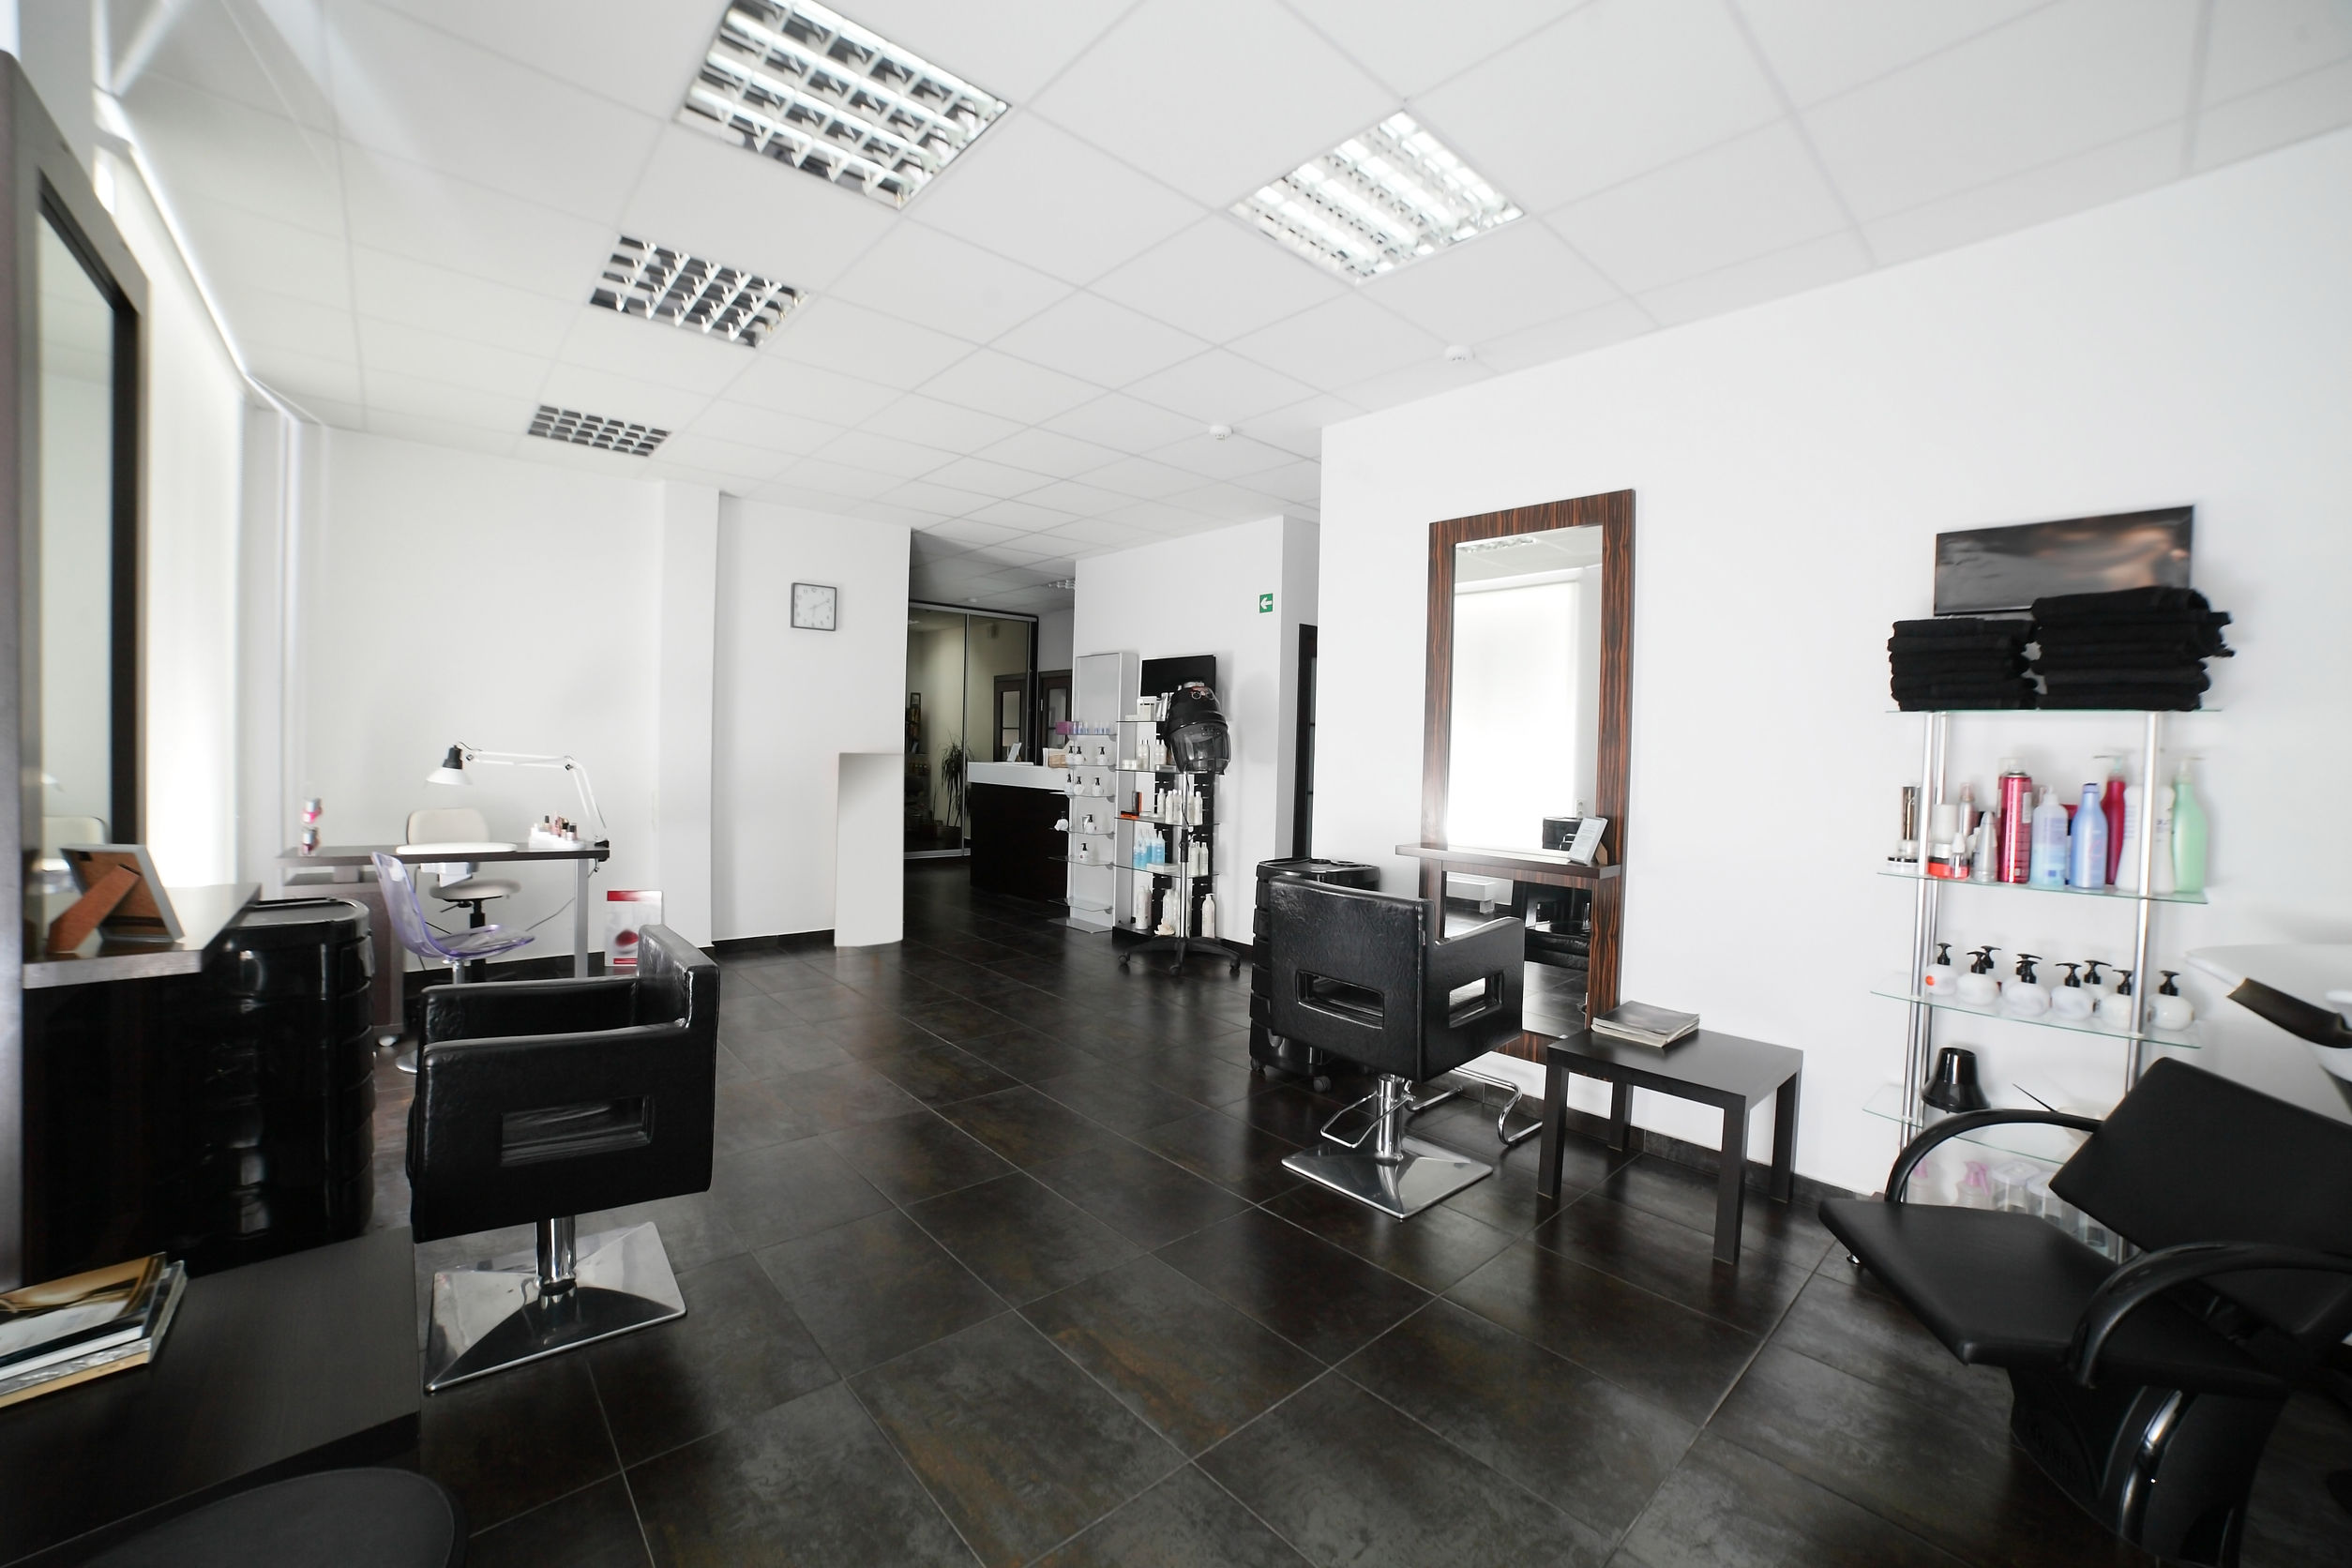 Retail/Commercial Cleaning Service